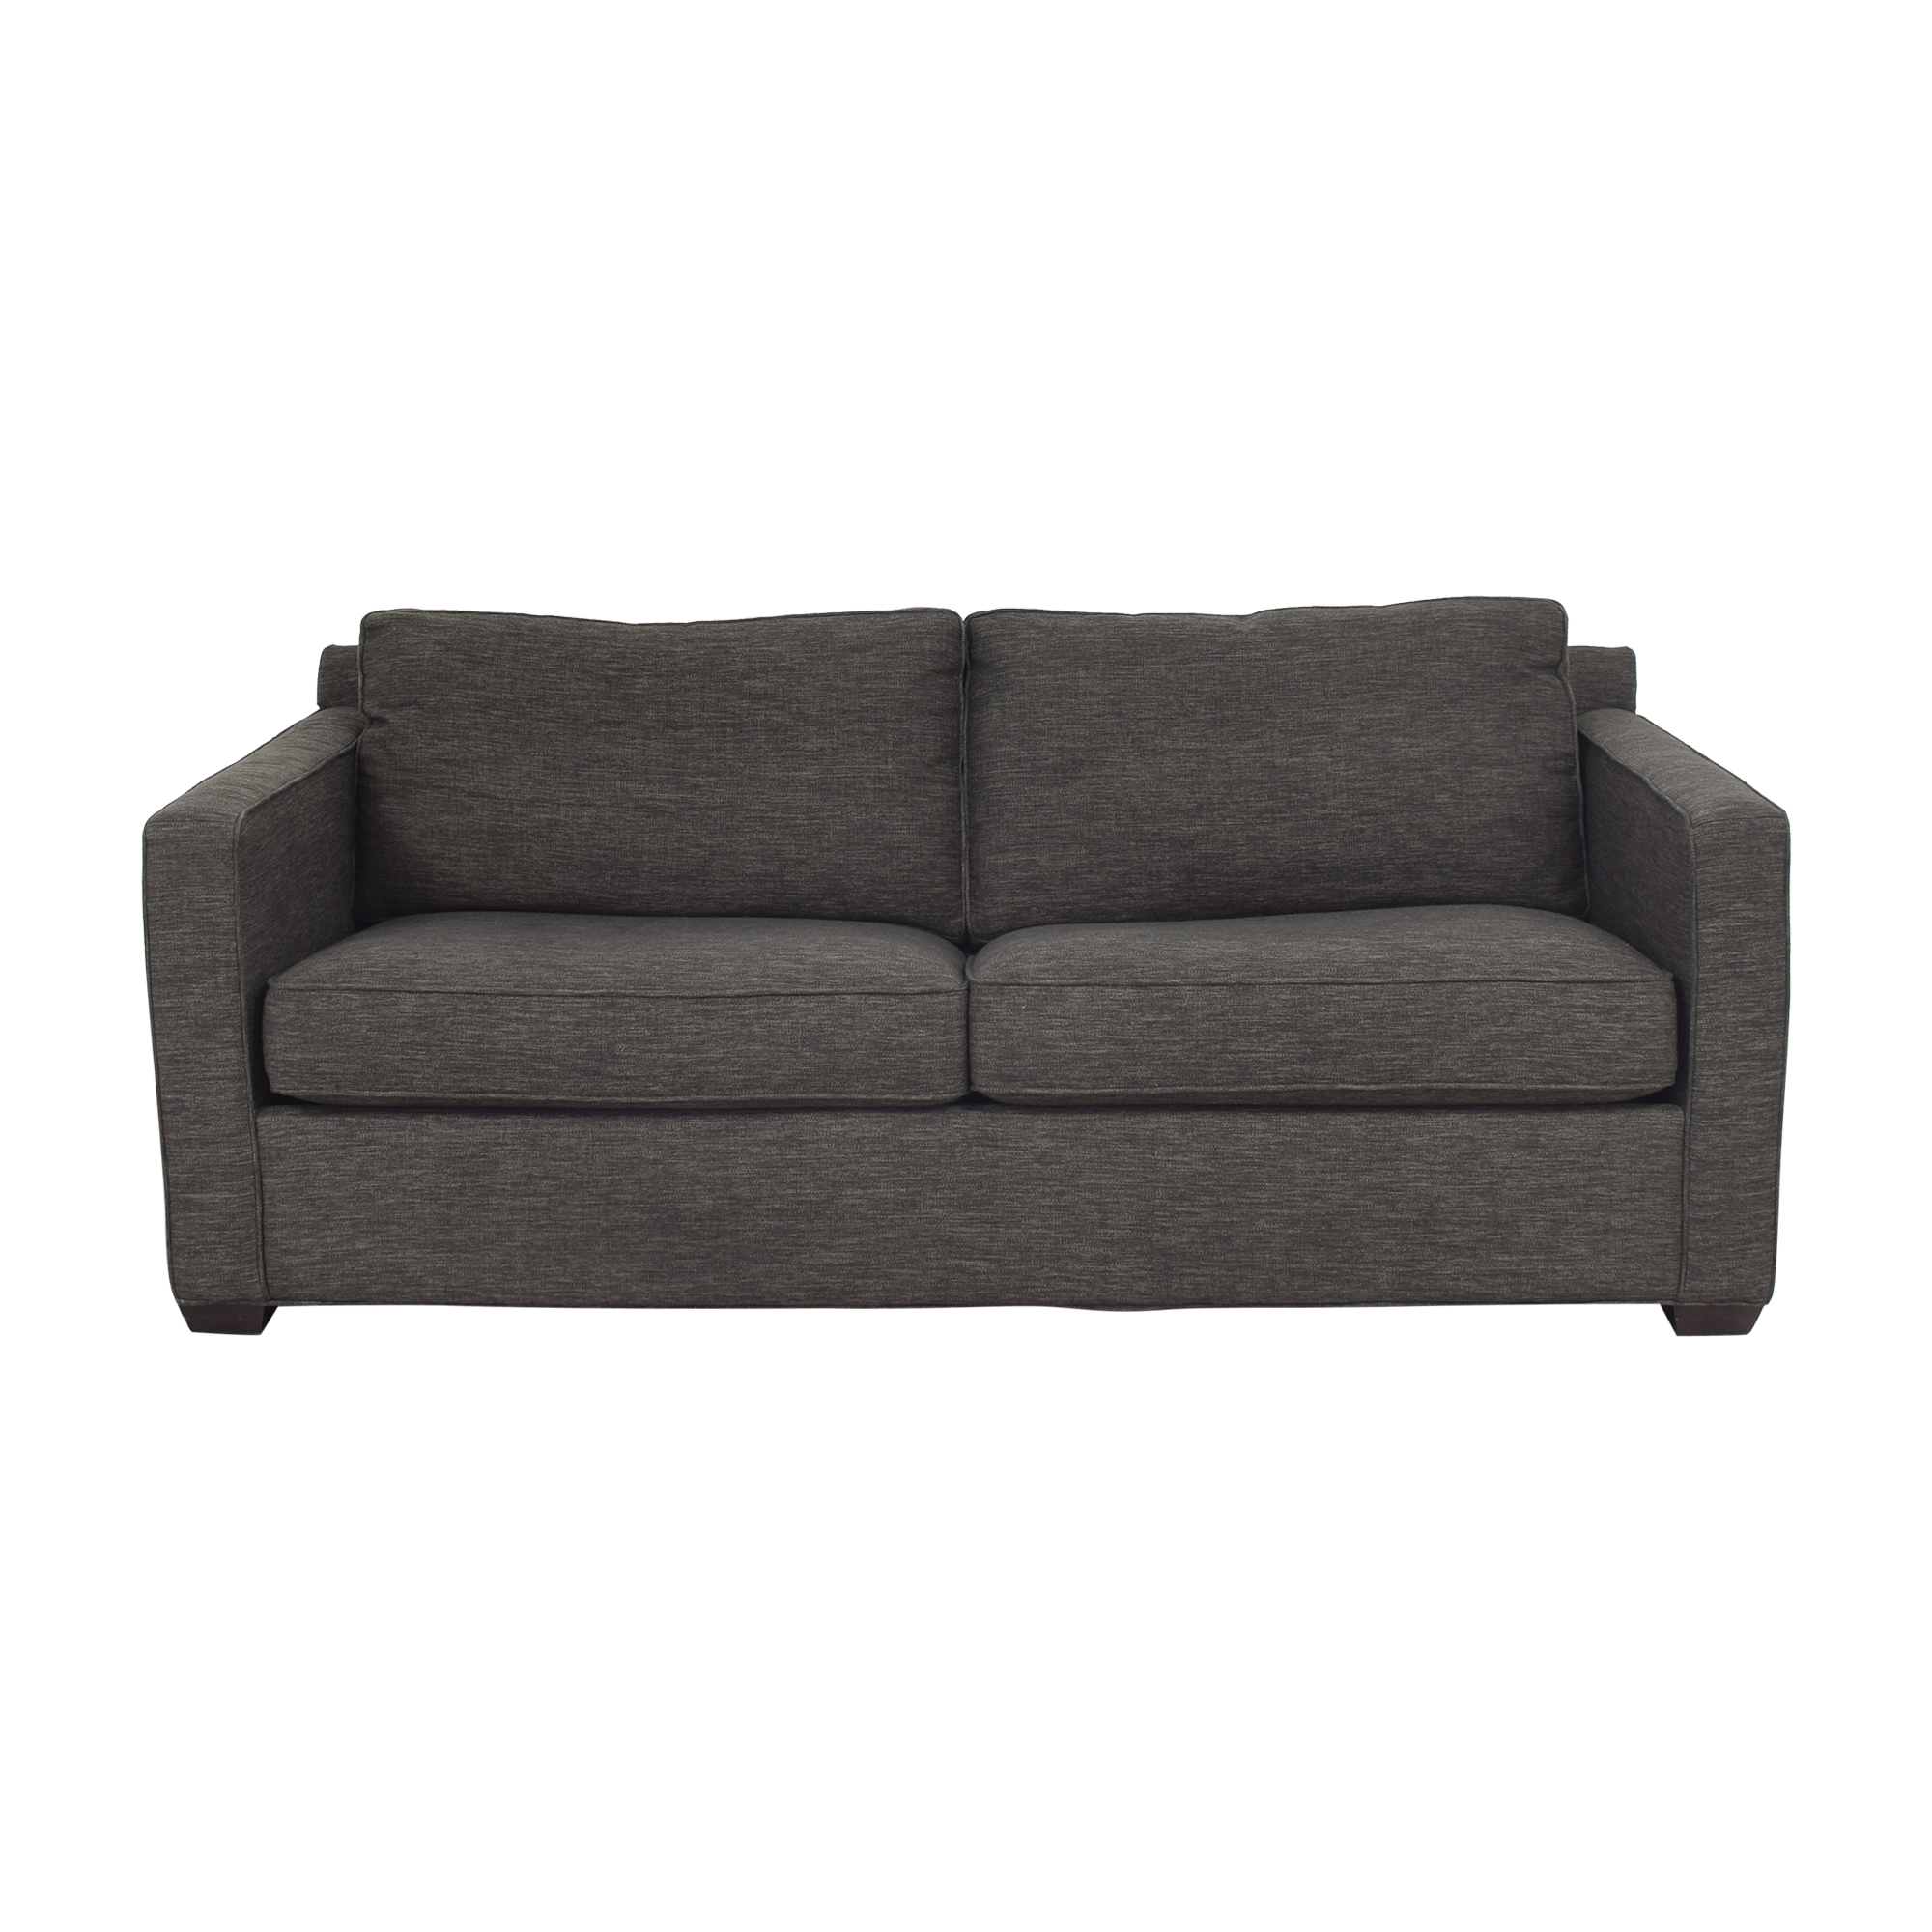 Crate & Barrel Crate & Barrel Davis Queen Sleeper Sofa second hand